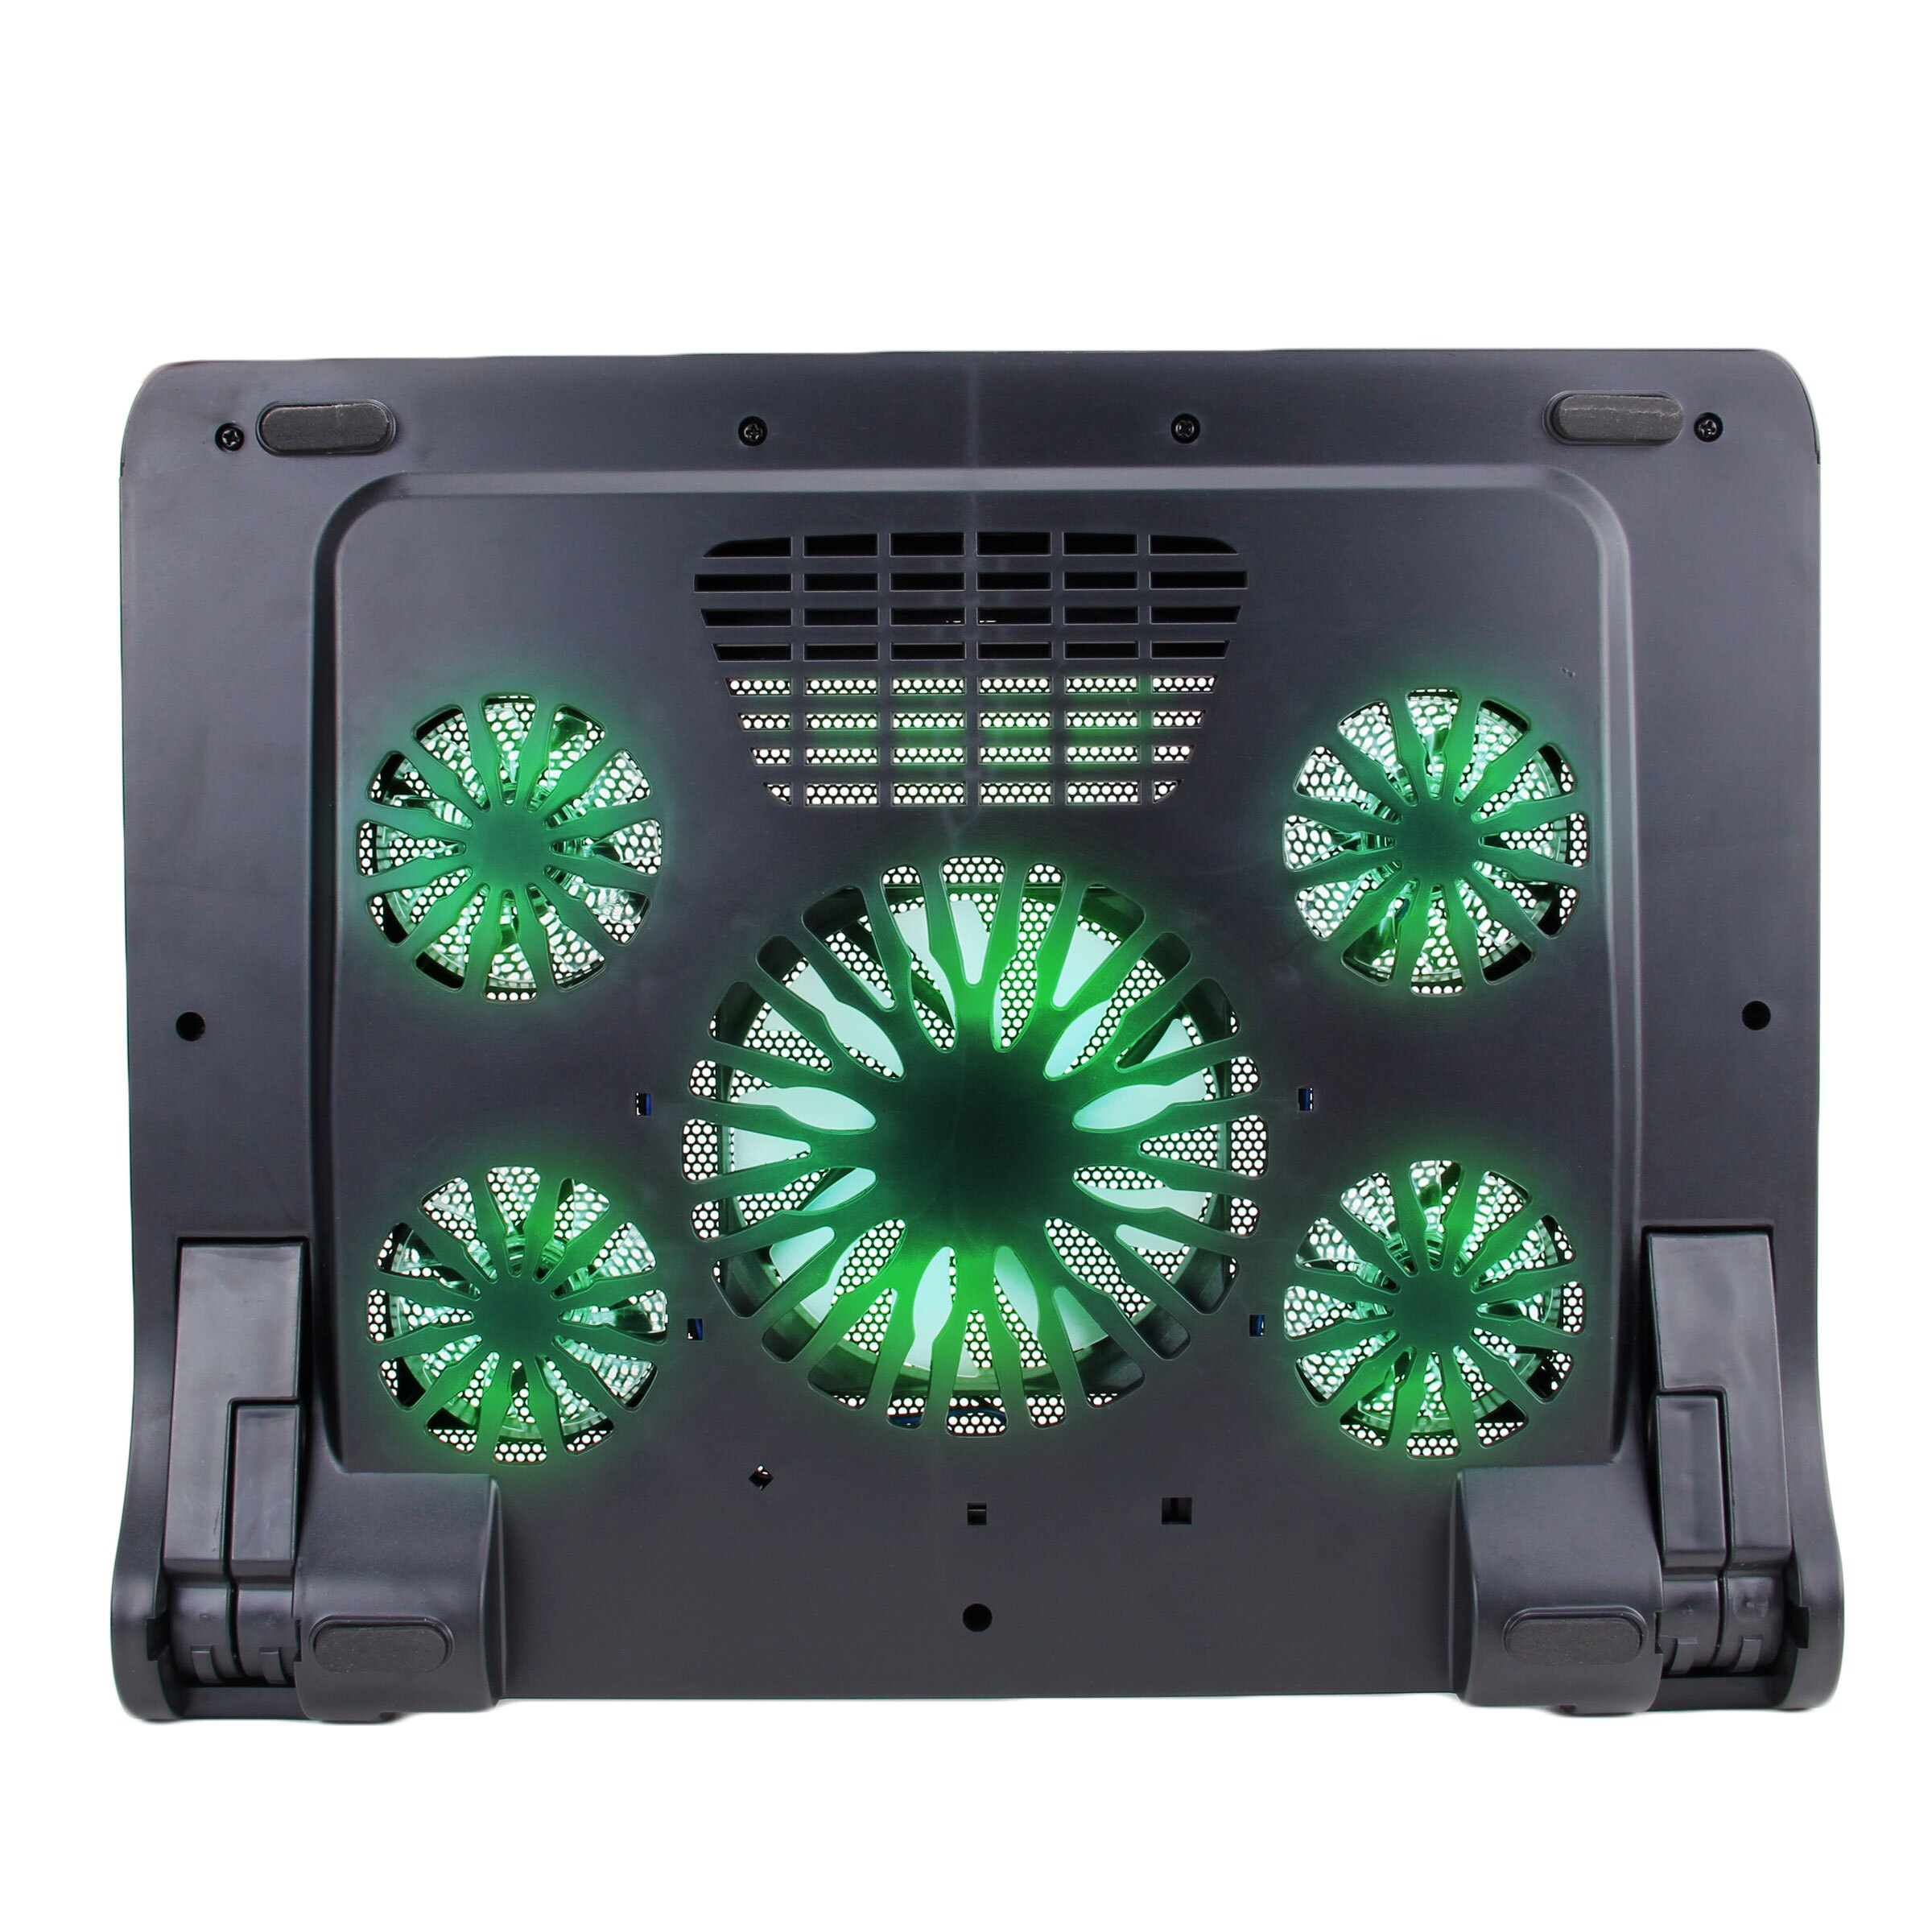 ENHANCE GX-C1 Laptop Cooling Stand (15.75? x 12.75?) with 5 LED Fans & Dual USB Ports 7